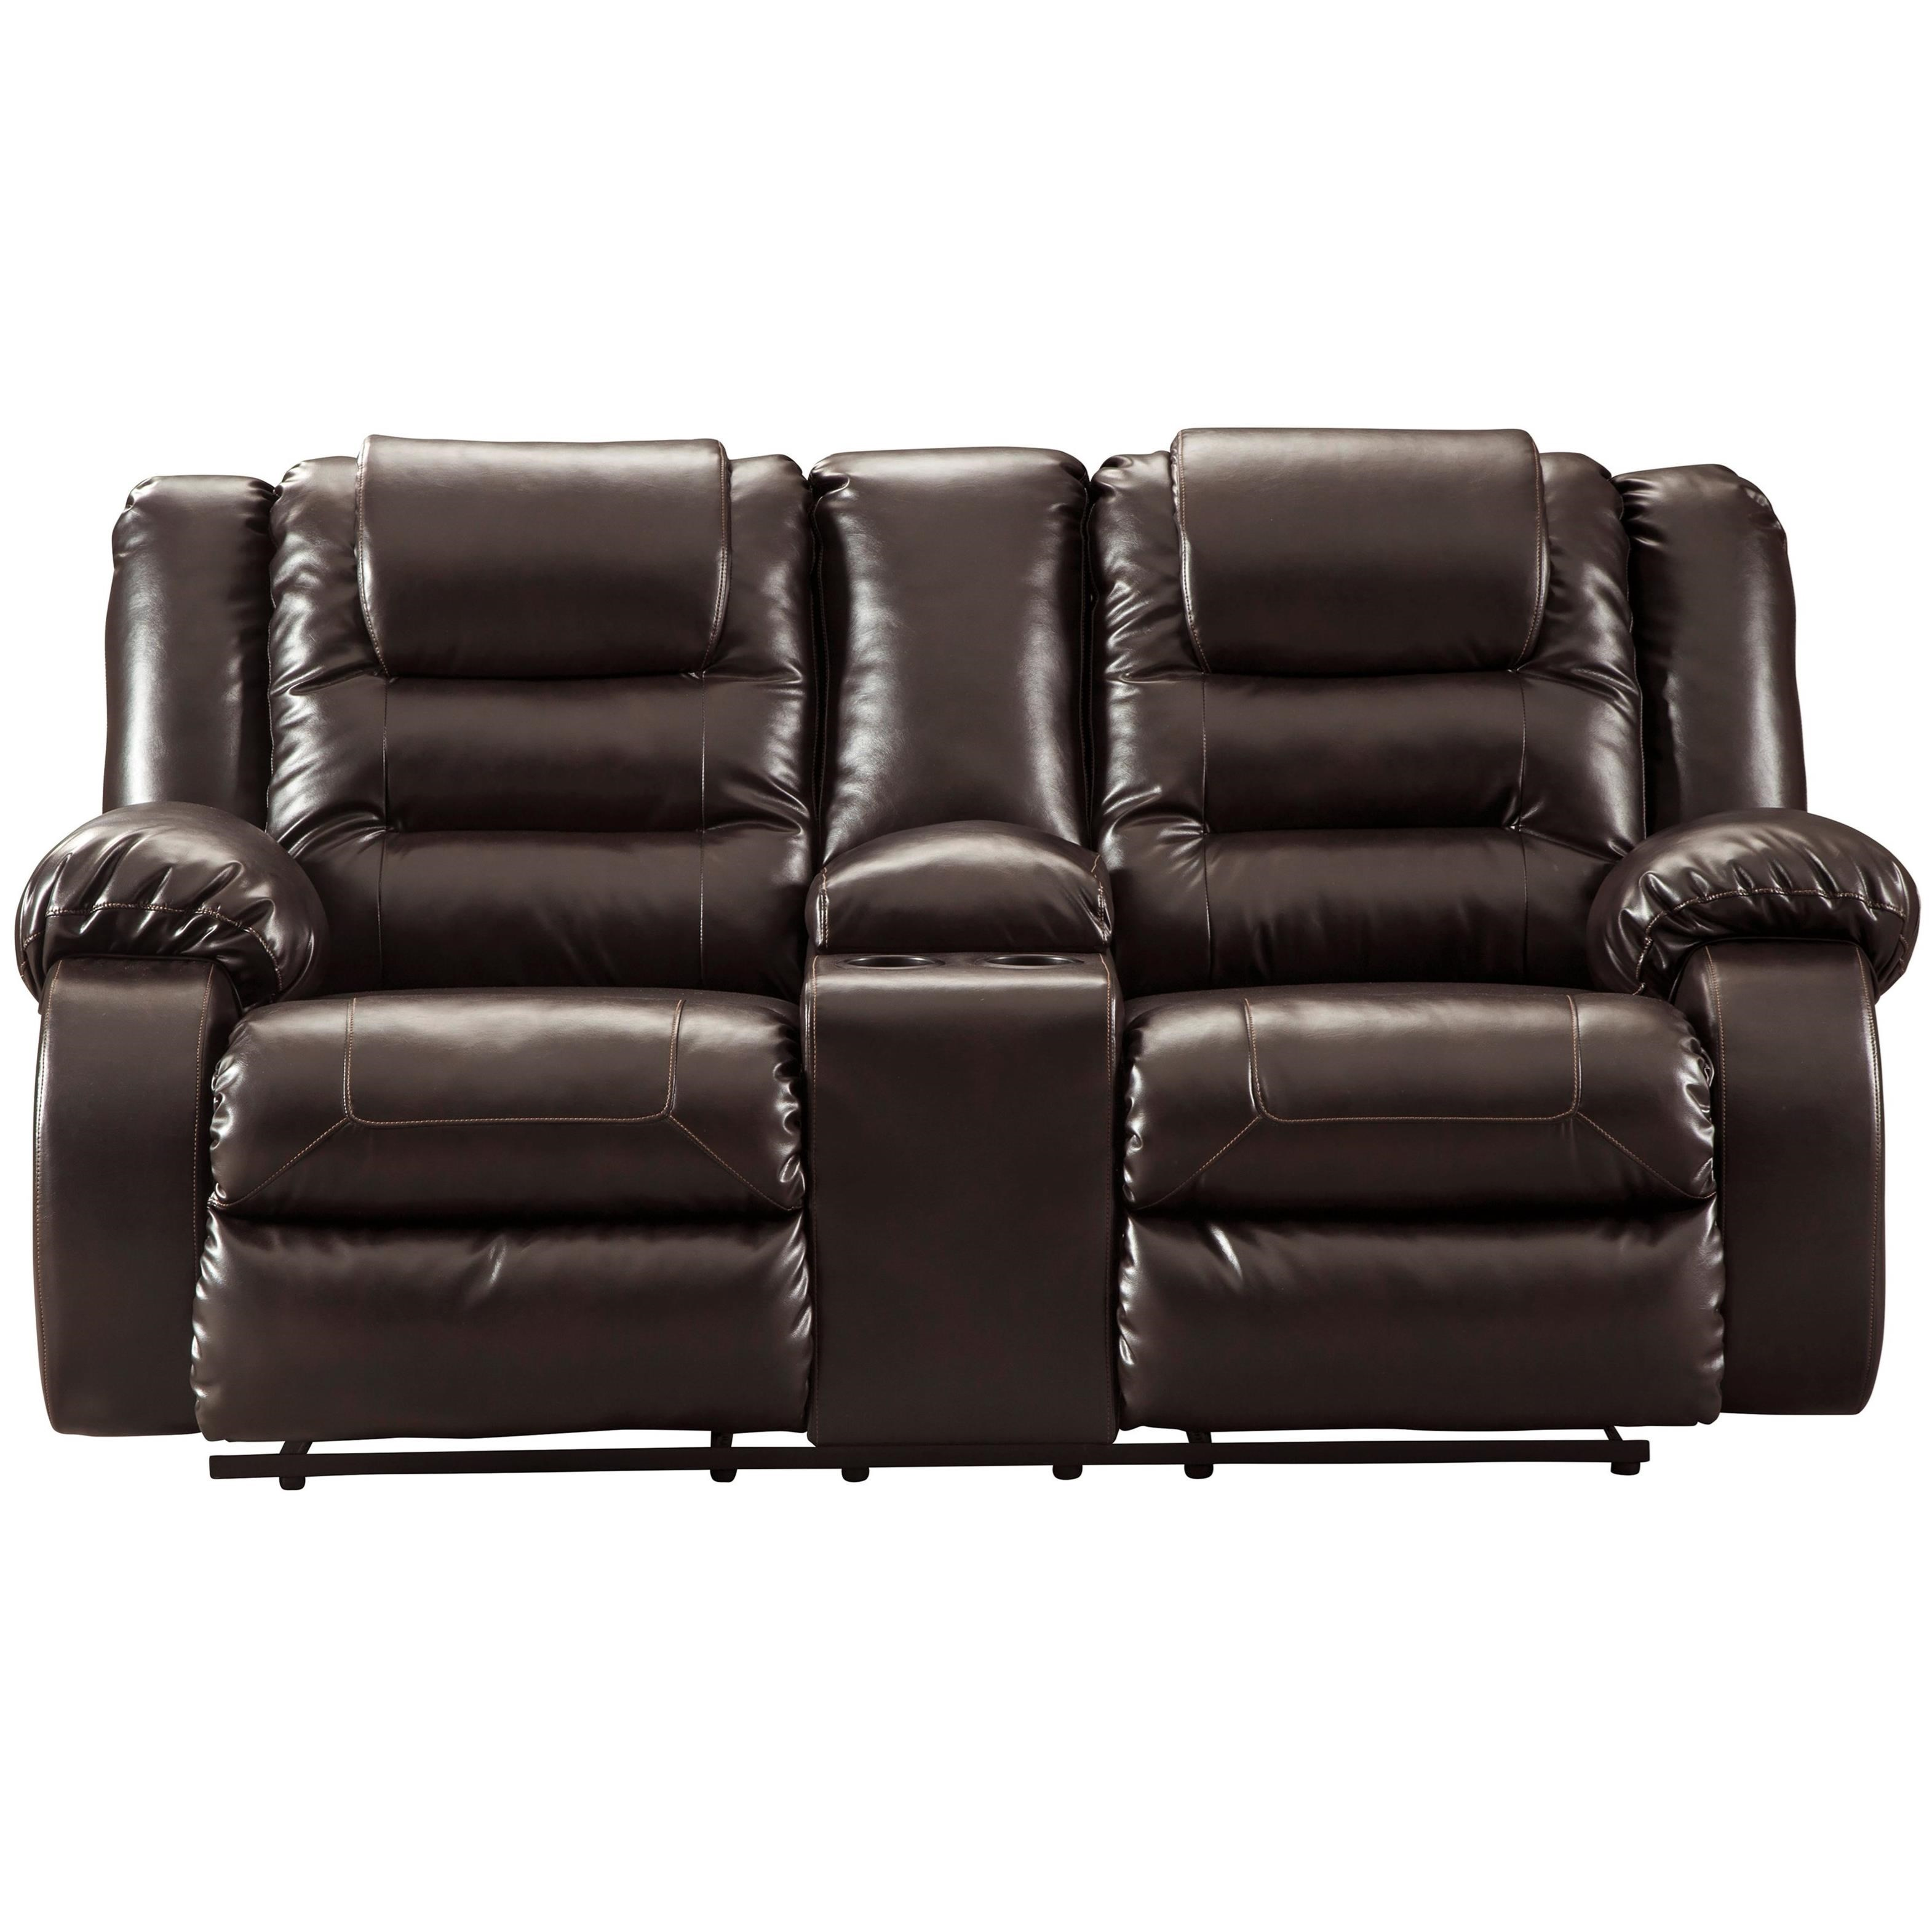 Double Recliner Chair Vacherie Casual Double Reclining Love Seat With Storage Console By Signature Design By Ashley At Royal Furniture